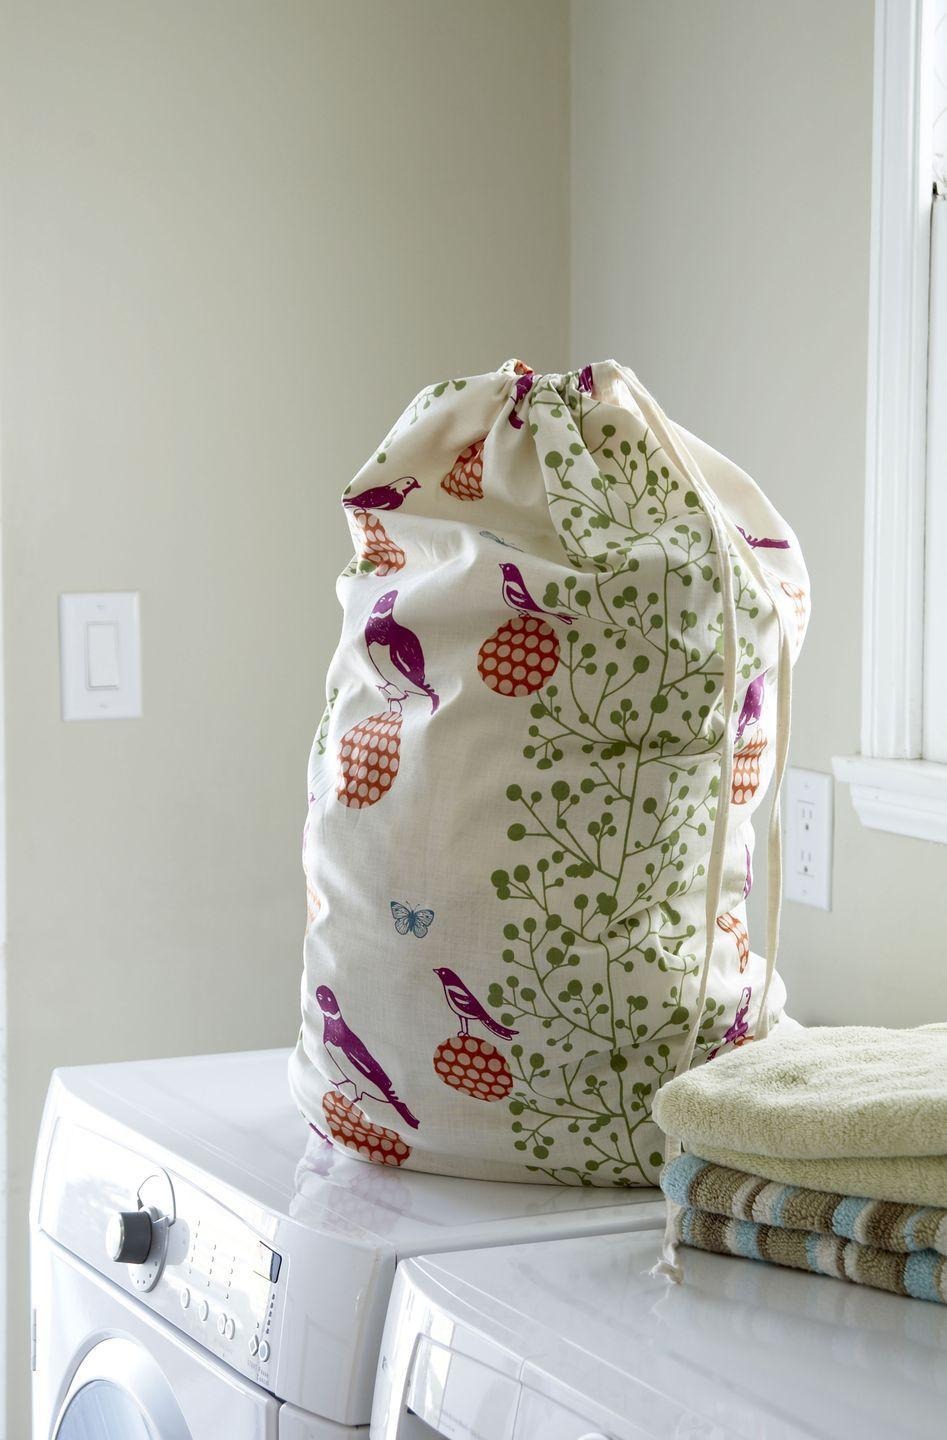 "<p>Instead of a laundry bin in the bathroom, invest in a set of drawstring cotton laundry bags (buy from <a href=""https://www.amazon.co.uk/s?k=drawstring+cotton+laundry+bag&ref=nb_sb_noss&tag=hearstuk-yahoo-21&ascsubtag=%5Bartid%7C2060.g.185%5Bsrc%7Cyahoo-uk"" rel=""nofollow noopener"" target=""_blank"" data-ylk=""slk:Amazon"" class=""link rapid-noclick-resp"">Amazon</a>) to hang on the back of every bedroom door. This avoids dirty clothes piling up on the floor and is also more hygienic, as the bags can be washed too.</p><p><strong>More: </strong><a href=""http://www.housebeautiful.co.uk/lifestyle/cleaning/news/a93/how-to-clean-a-washing-machine/"" rel=""nofollow noopener"" target=""_blank"" data-ylk=""slk:How to clean a washing machine"" class=""link rapid-noclick-resp""><strong>How to clean a washing machine</strong></a></p>"